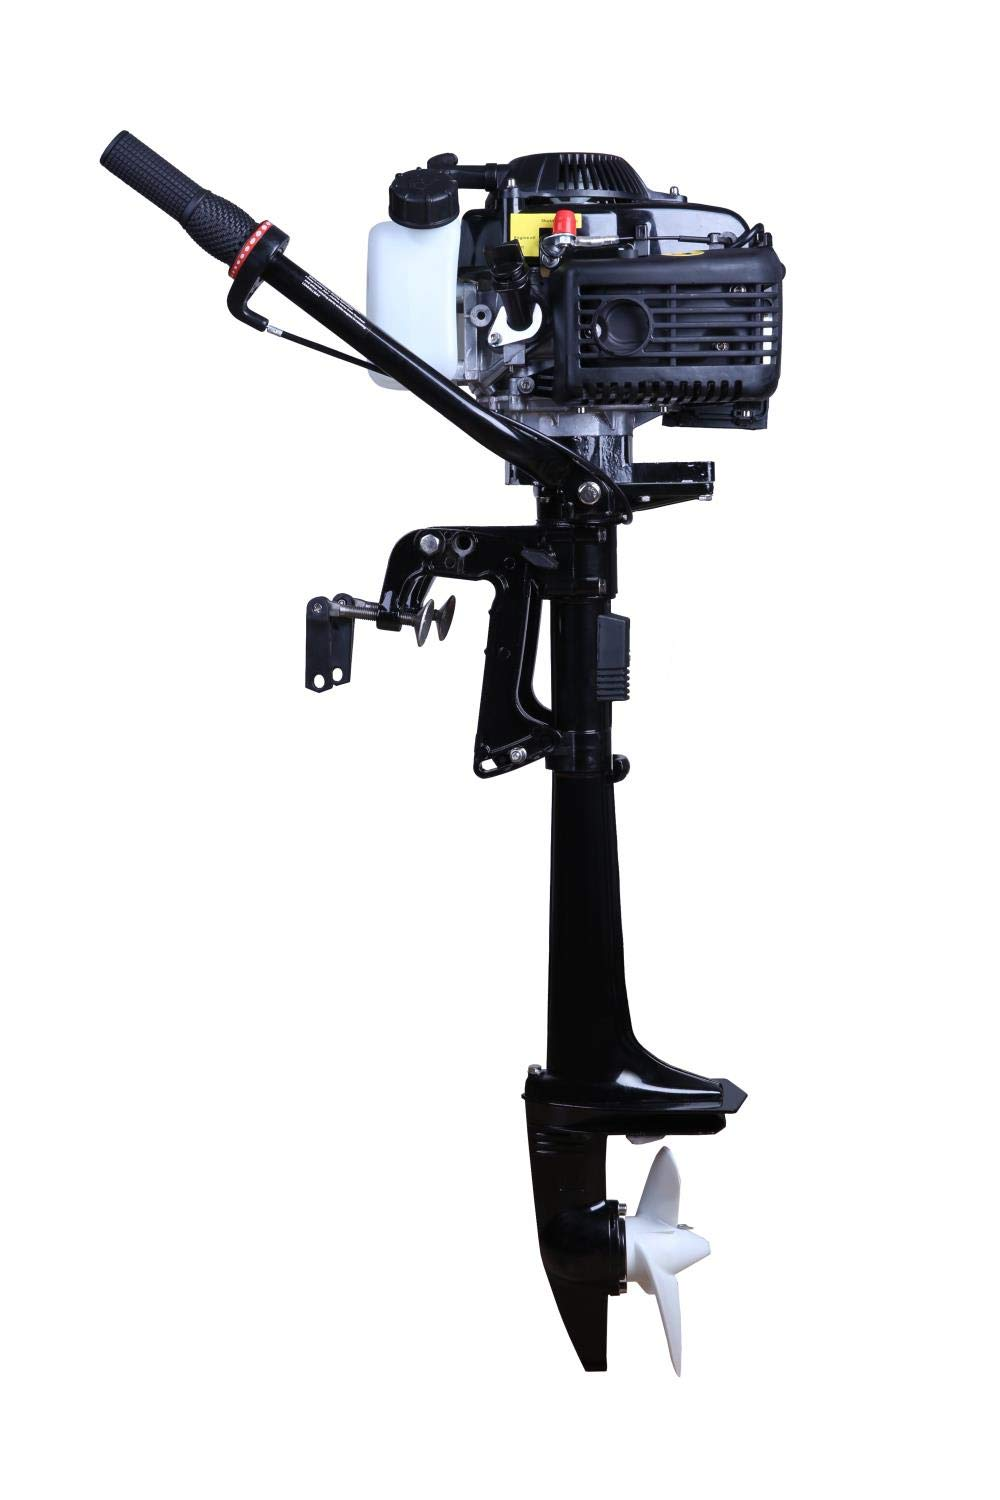 LEADALLWAY 4HP Boat Motor Four Stroke Air-Cooled Superior Boat Engine 55cc Outboard Motor for Kayak Fishing Boat Canoe Offering After Sales Support by LEADALLWAY